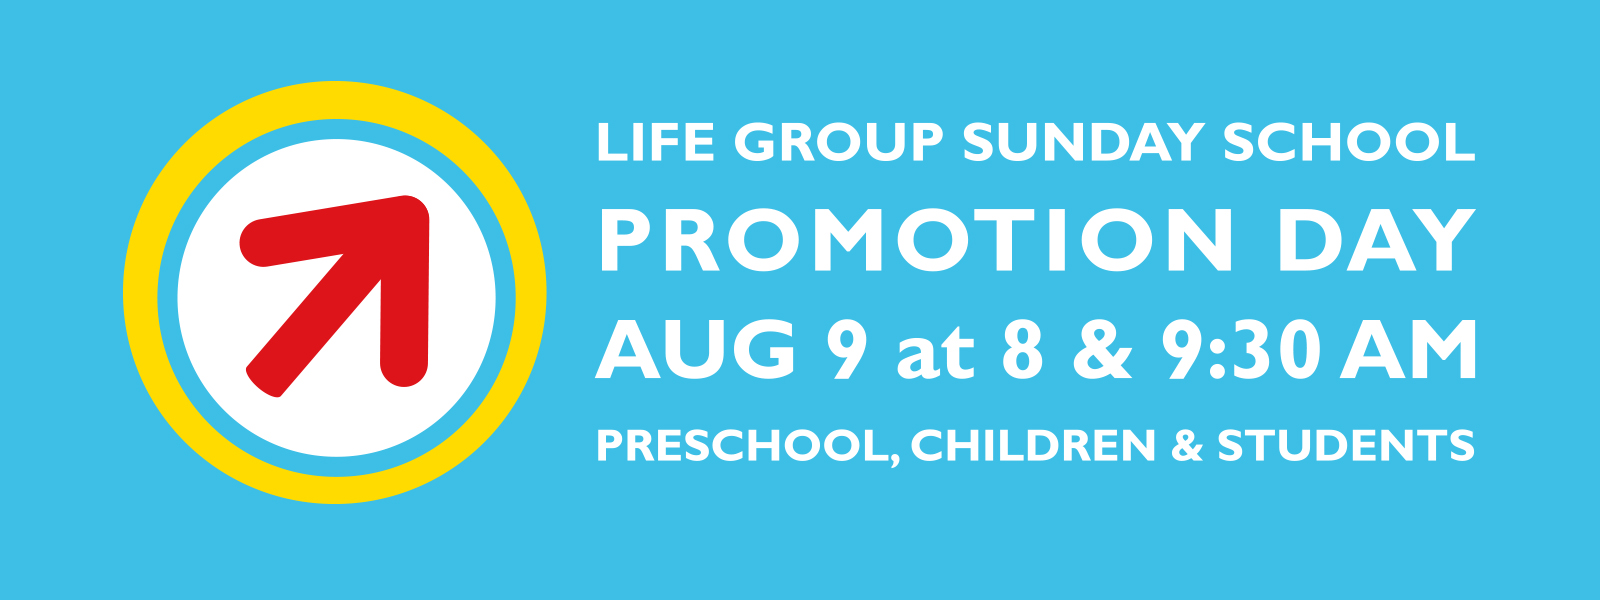 Life Group Promotion